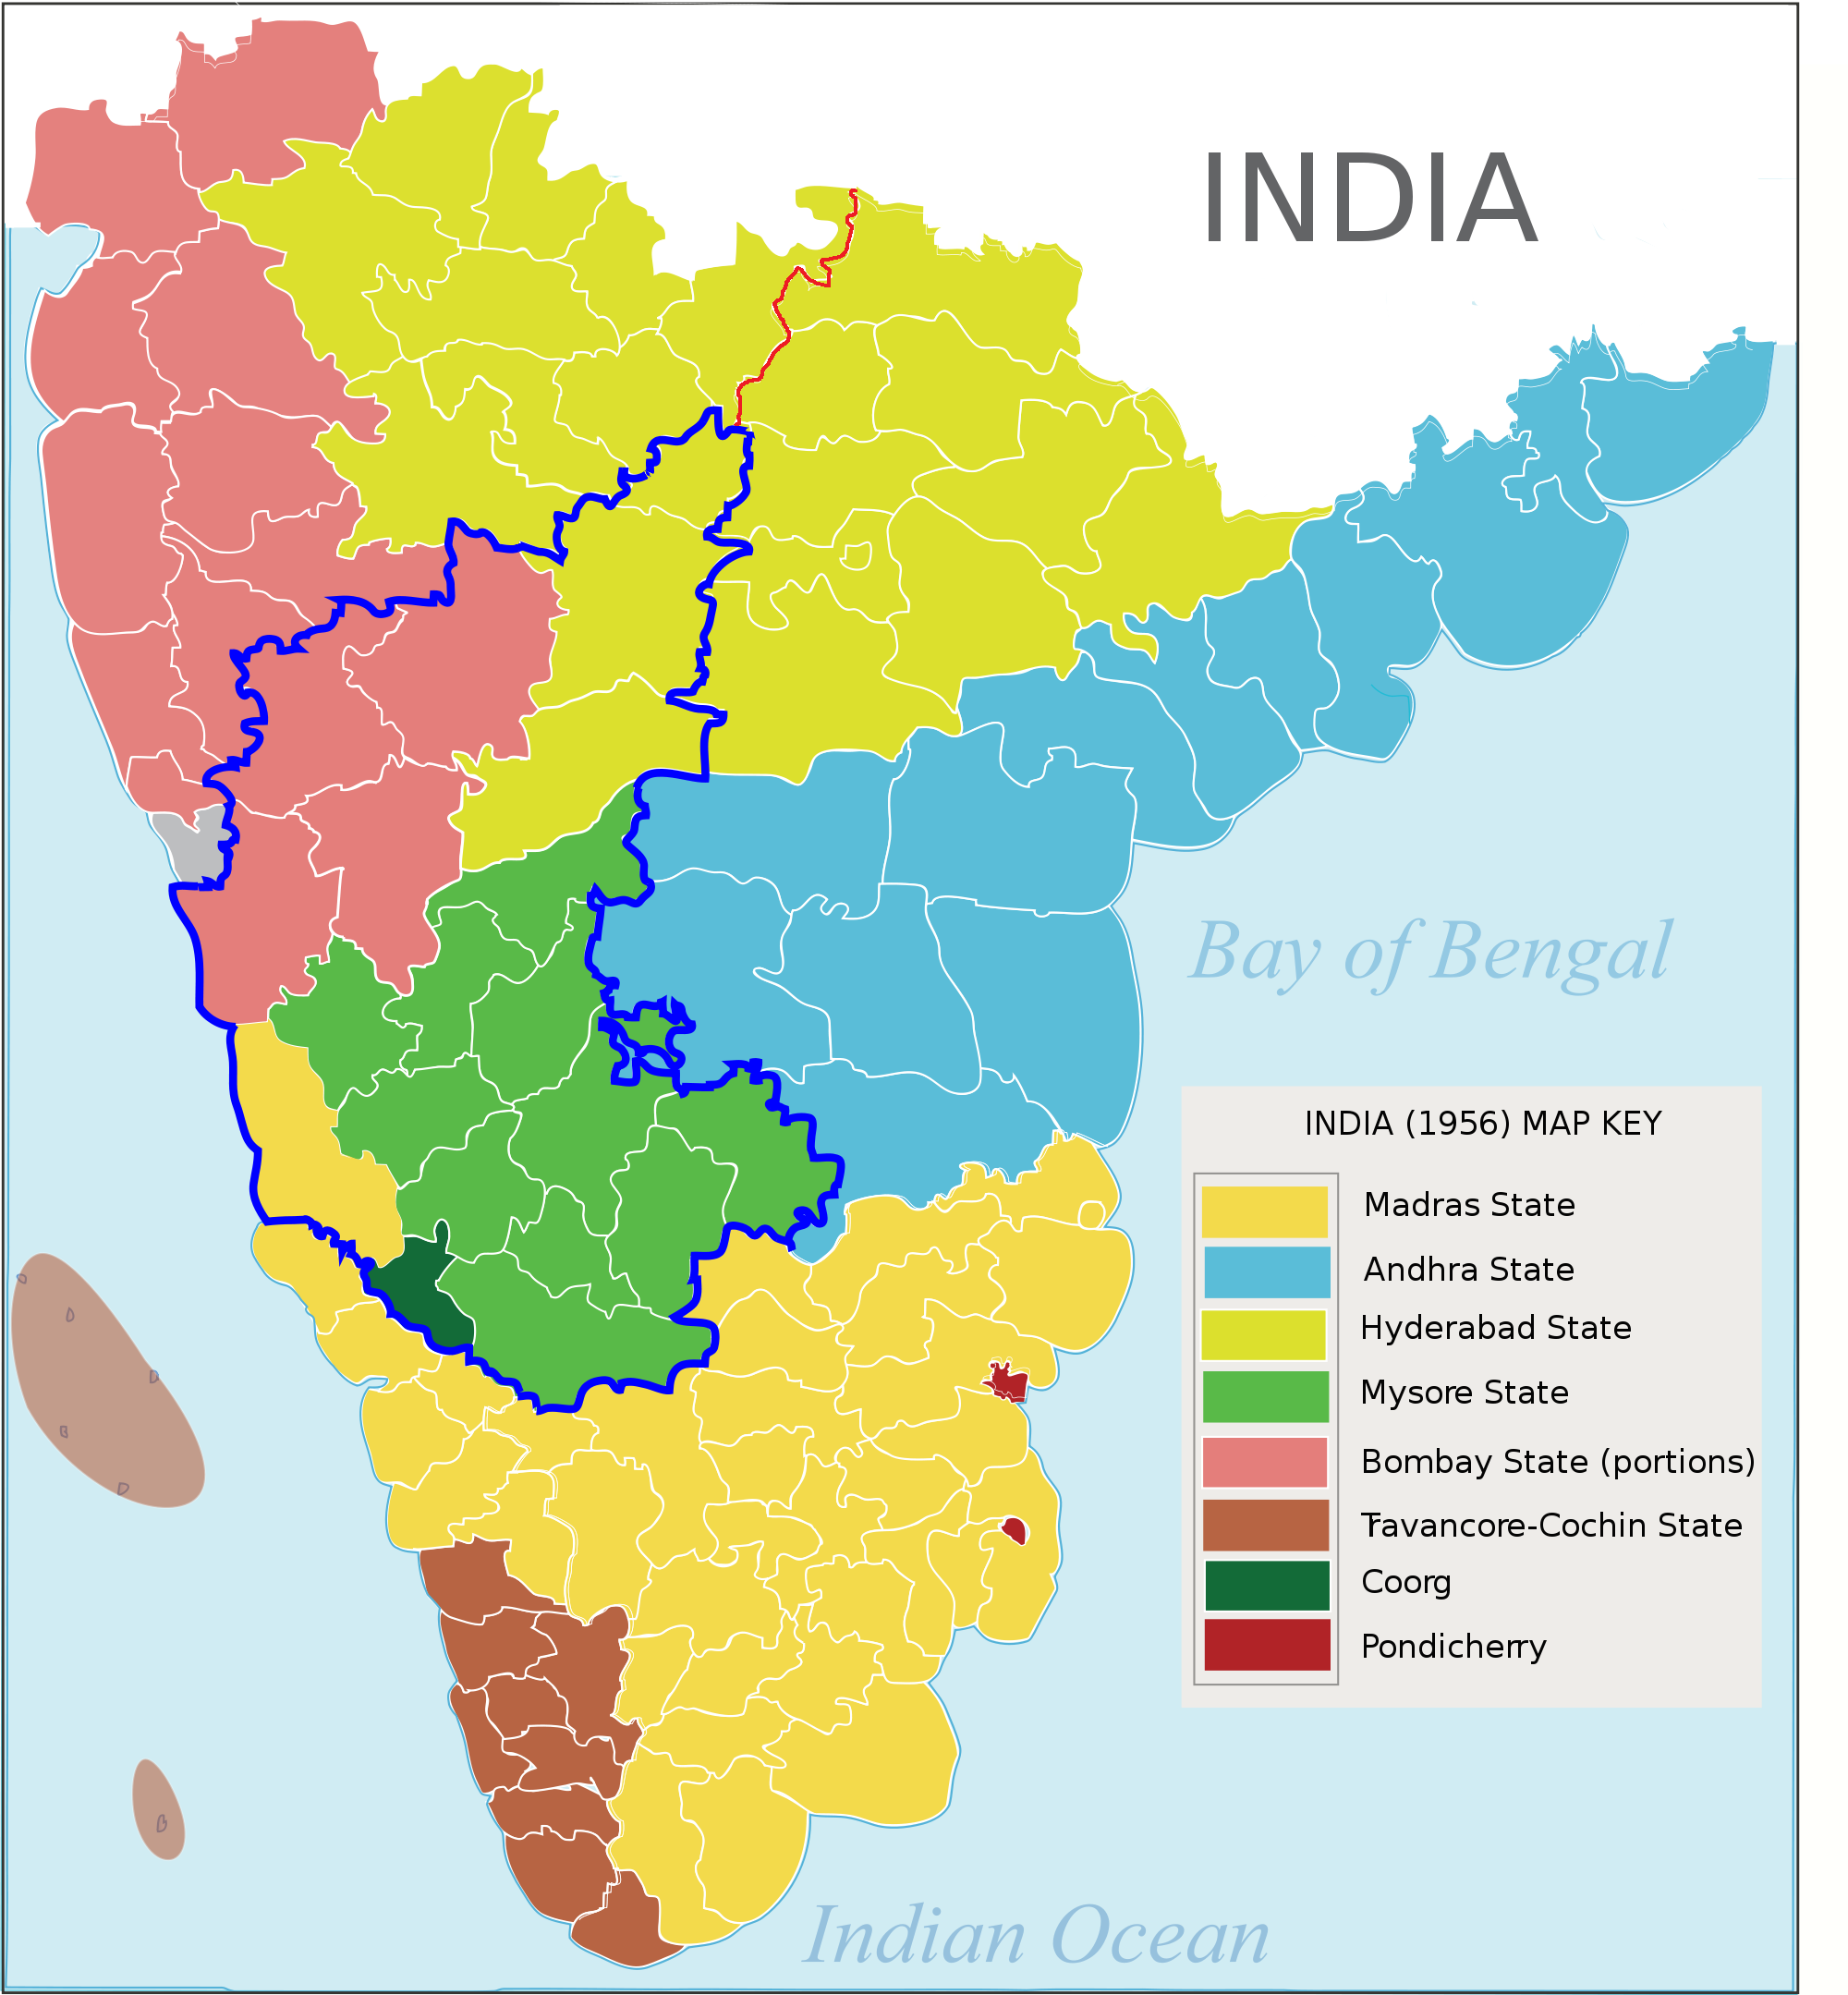 hyderabad karnataka map of south hyderabad karnataka region highlighted in blue borders